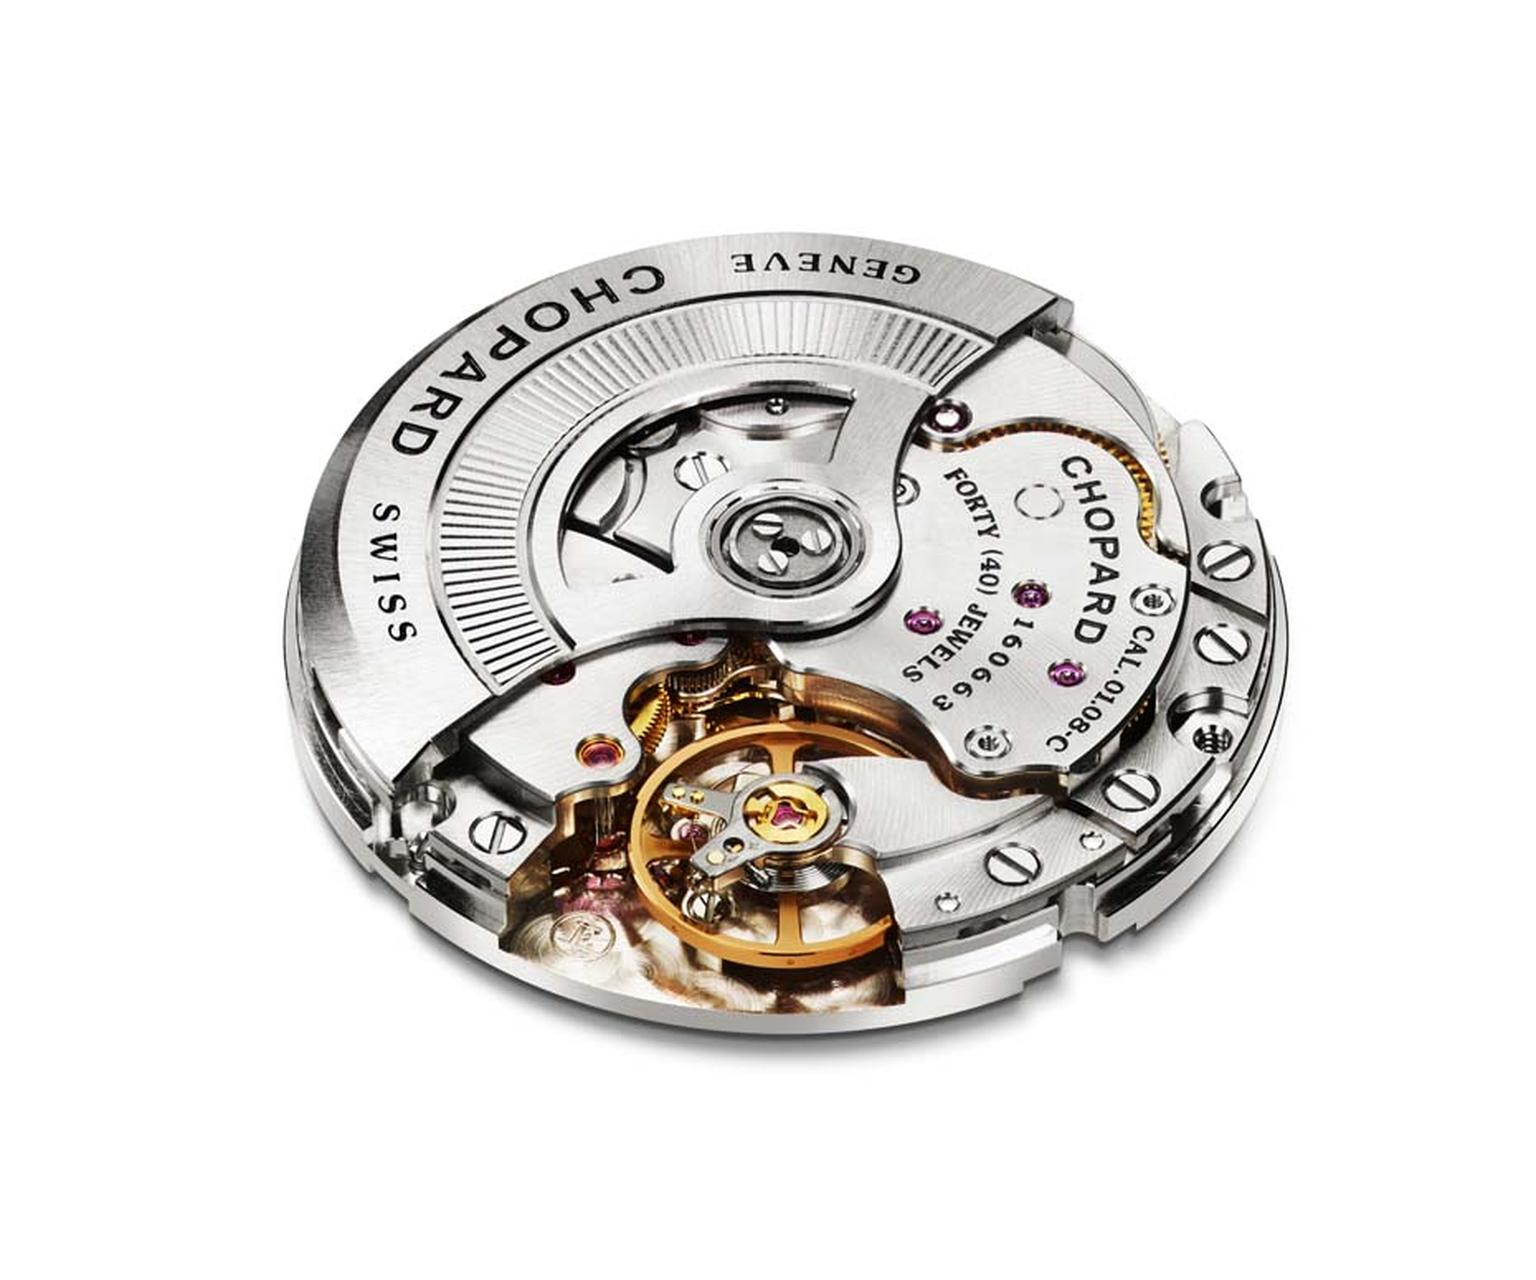 Chopard_Mille Miglia watches_011.jpg